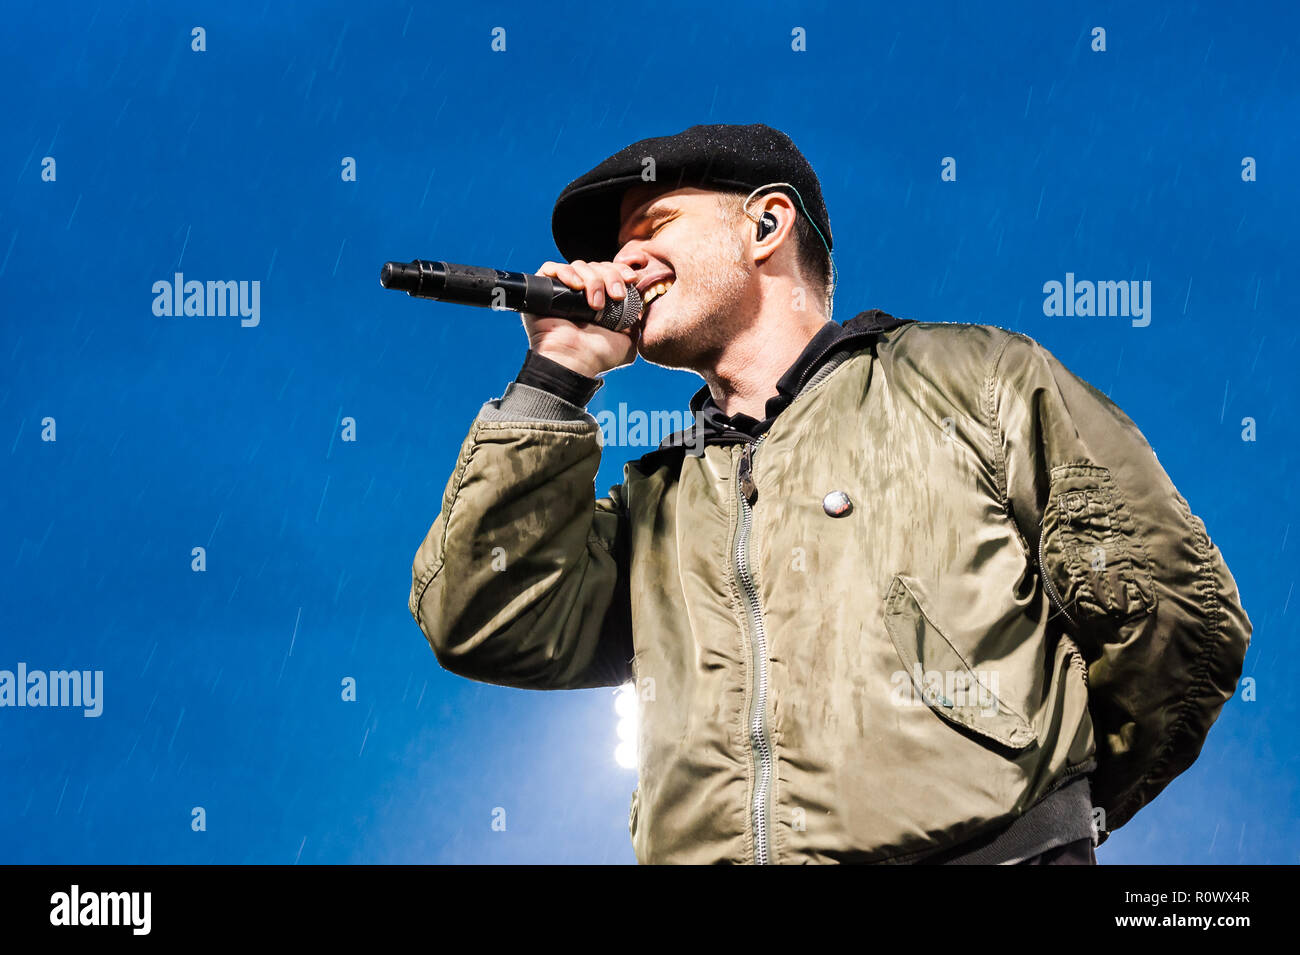 Al Barr, lead singer with the Dropkick Murphys, performing at a Fenway Park concert. - Stock Image